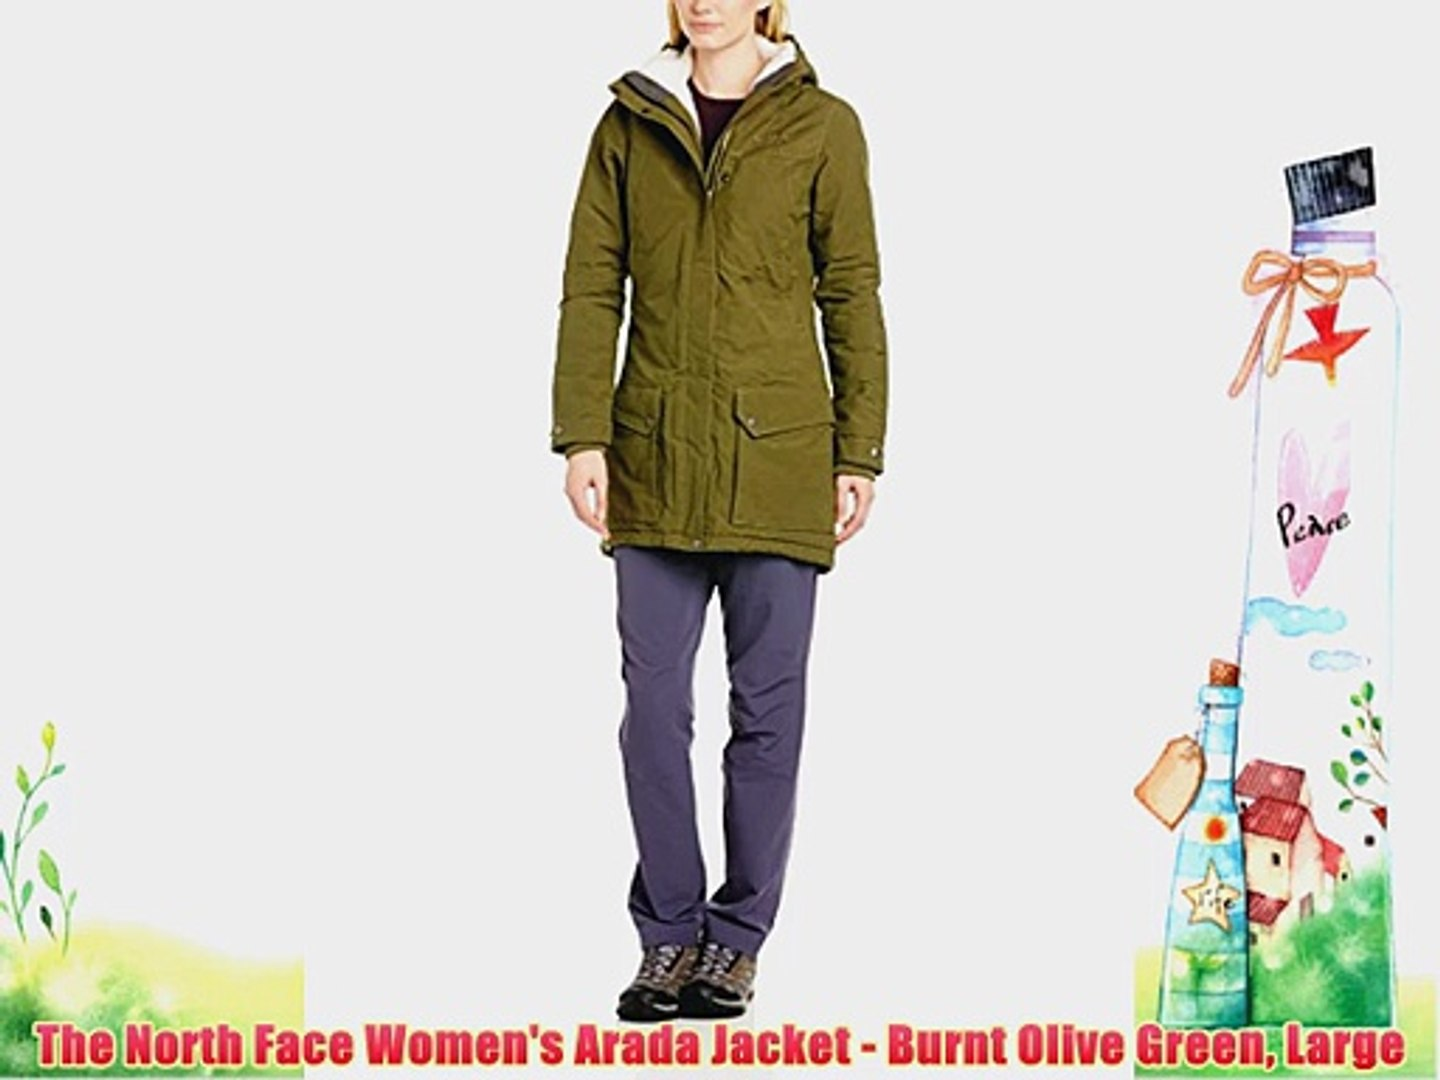 818492f38 The North Face Women's Arada Jacket - Burnt Olive Green Large